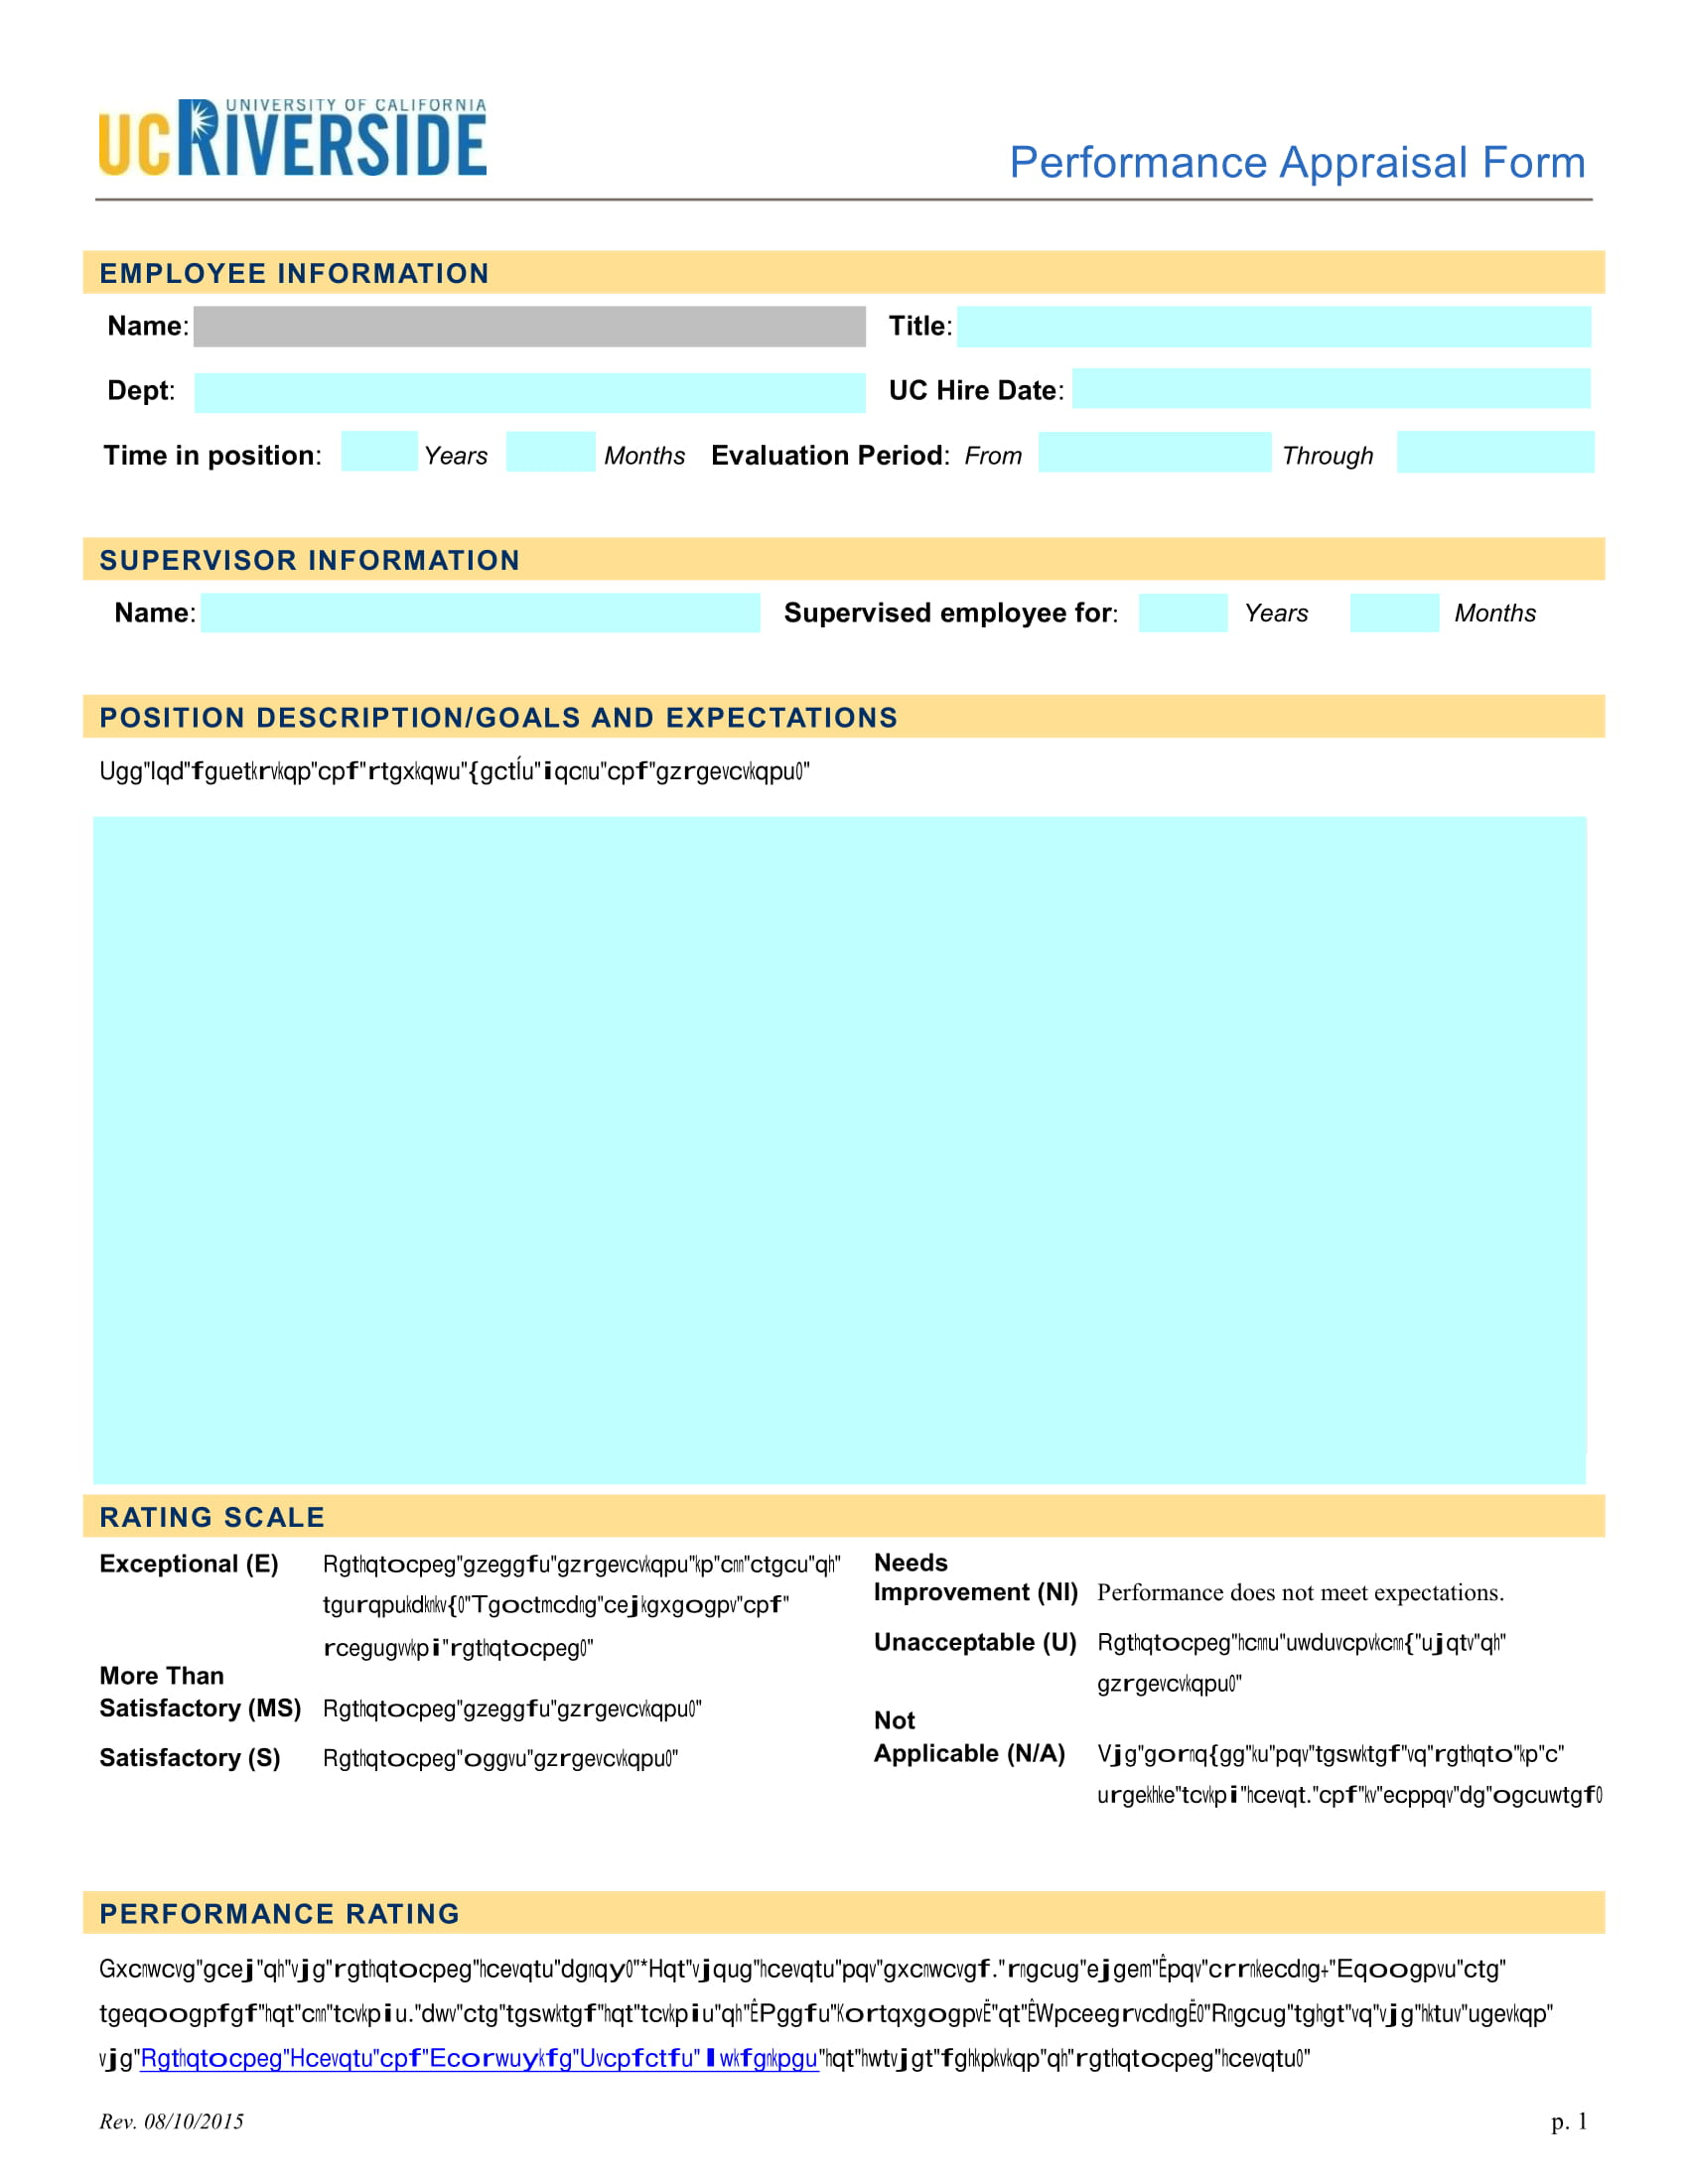 performance appraisal evaluation form